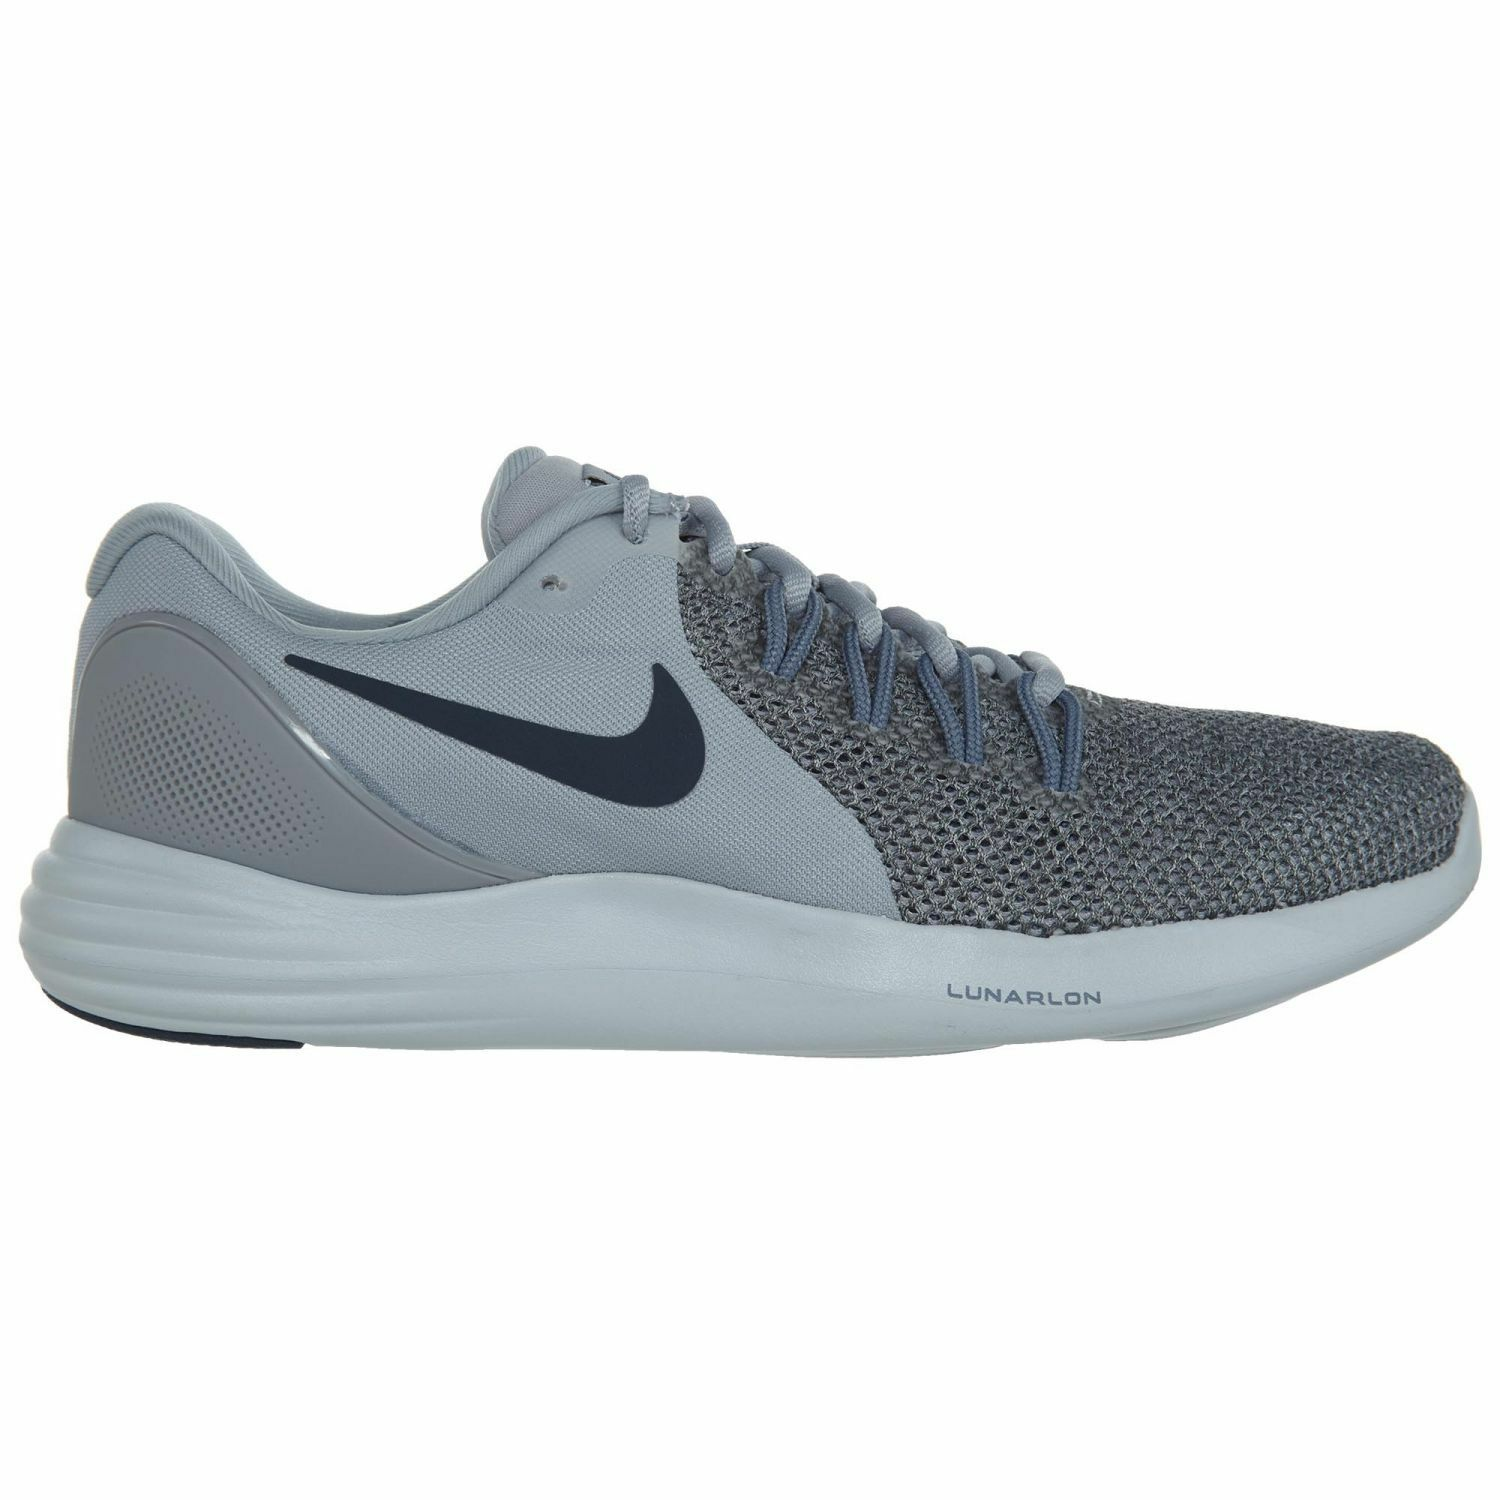 Nike Lunar Apparent Mens 908987-007 Grey Thunder Blue Running Shoes Size 8